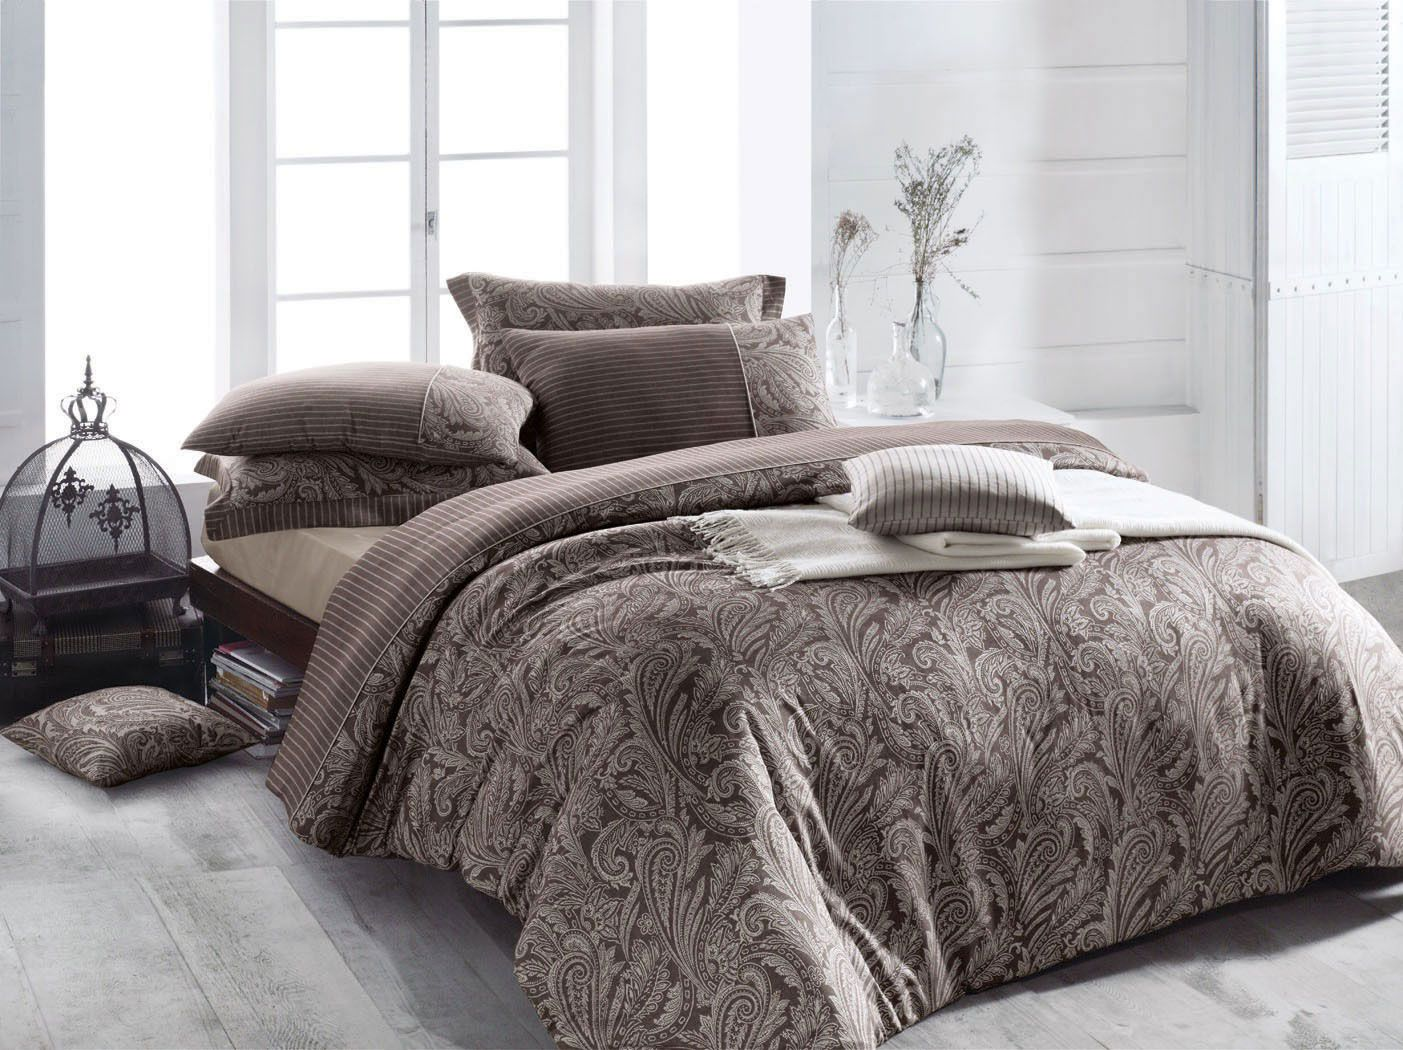 Elegant brown bedding. http://www.home-exclusive.ro/lenjerie-de-pat-lux-2-persoane-issimo-home-sheridan?path=130_131_170